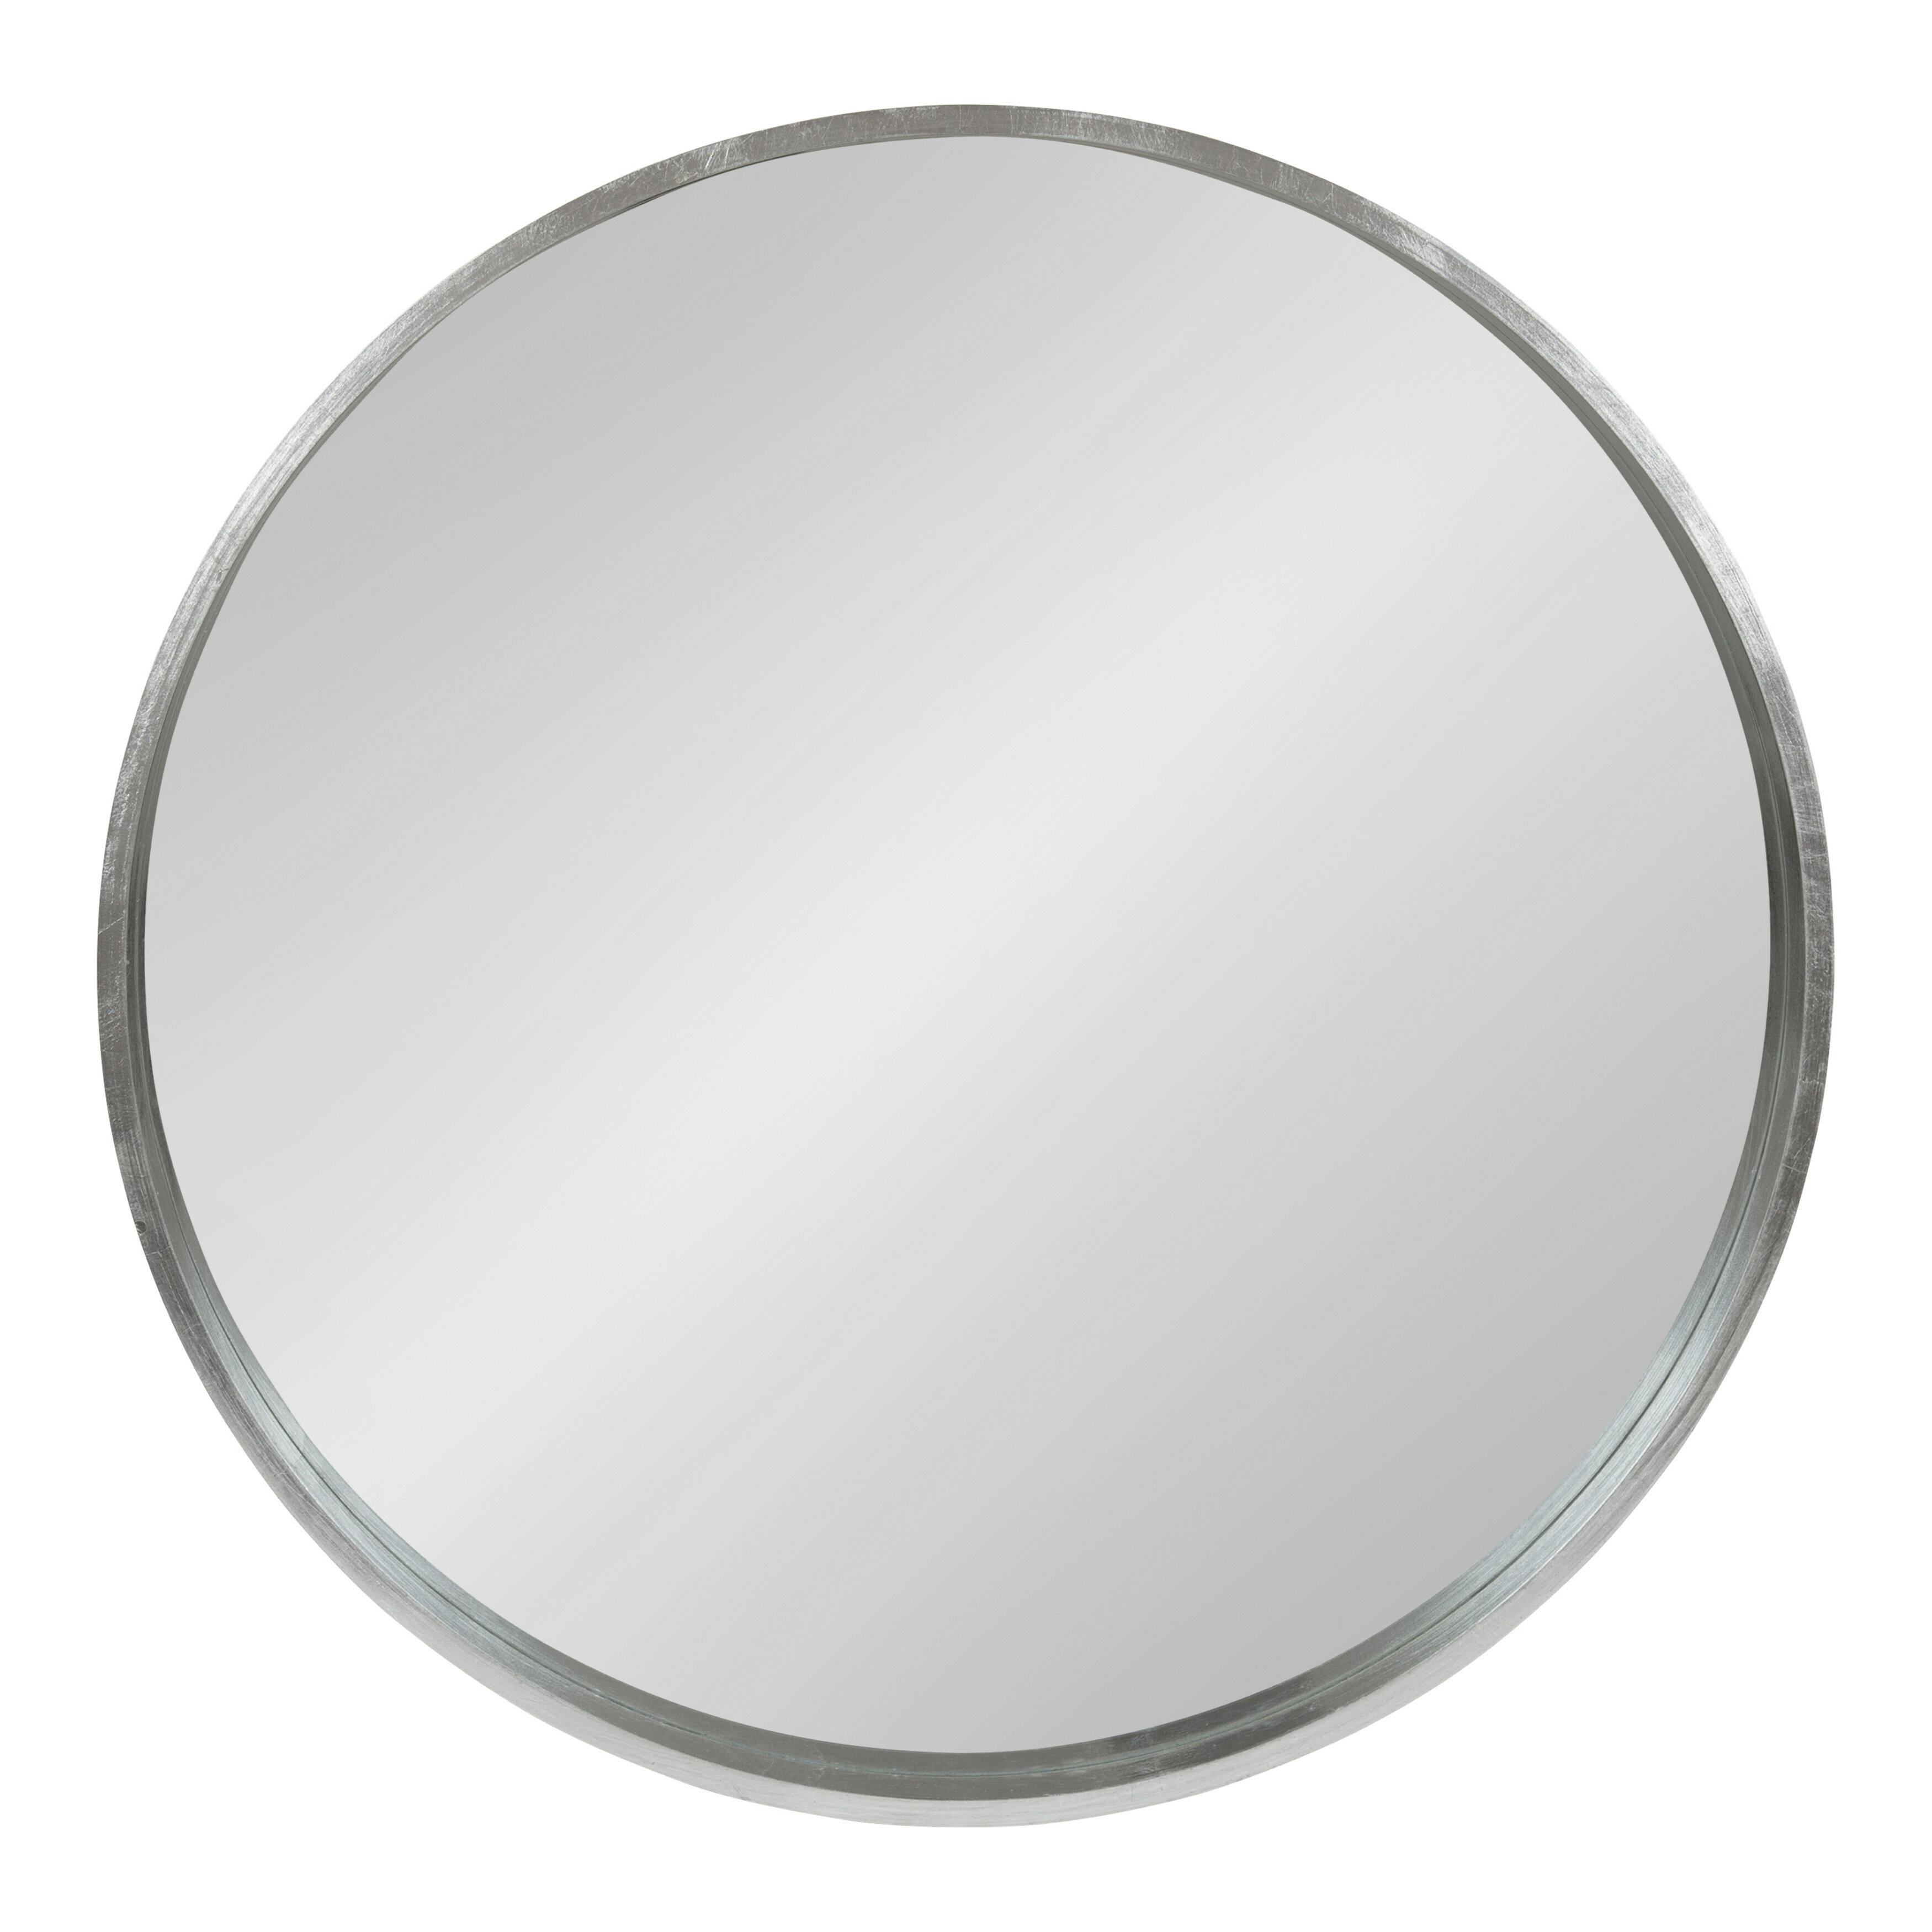 Antique Silver Wall Mirror | Wayfair for Swagger Accent Wall Mirrors (Image 1 of 30)